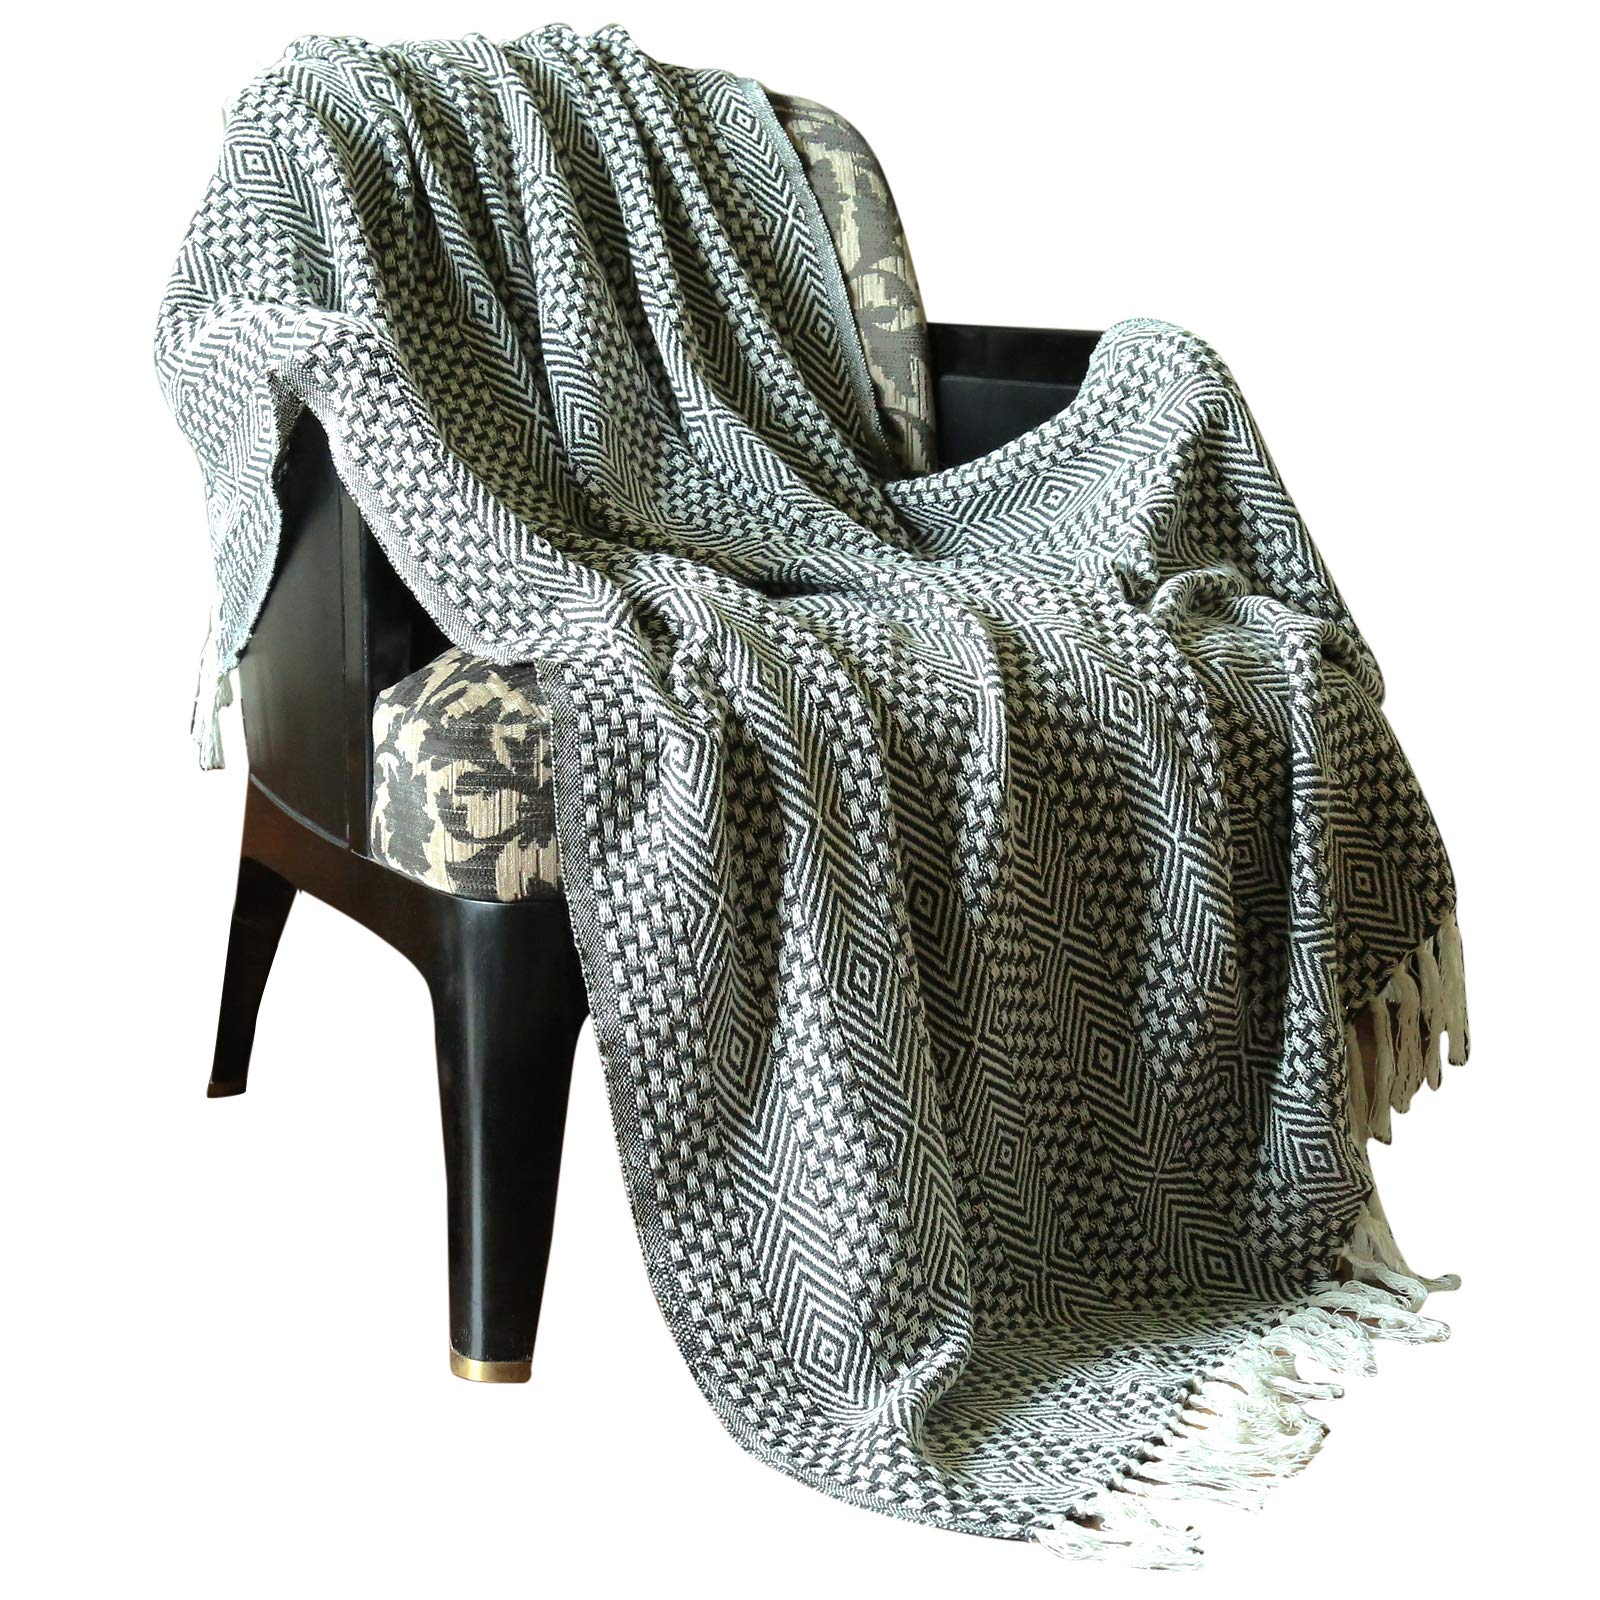 RAJRANG BRINGING RAJASTHAN TO YOU Rustic Farmhouse Throw Blanket - Vintage Boho Room Decor Blankets Soft Cotton Cozy Sofa Bed Throw with Cute Tassel - Charcoal Grey - 50 x 60 Inches